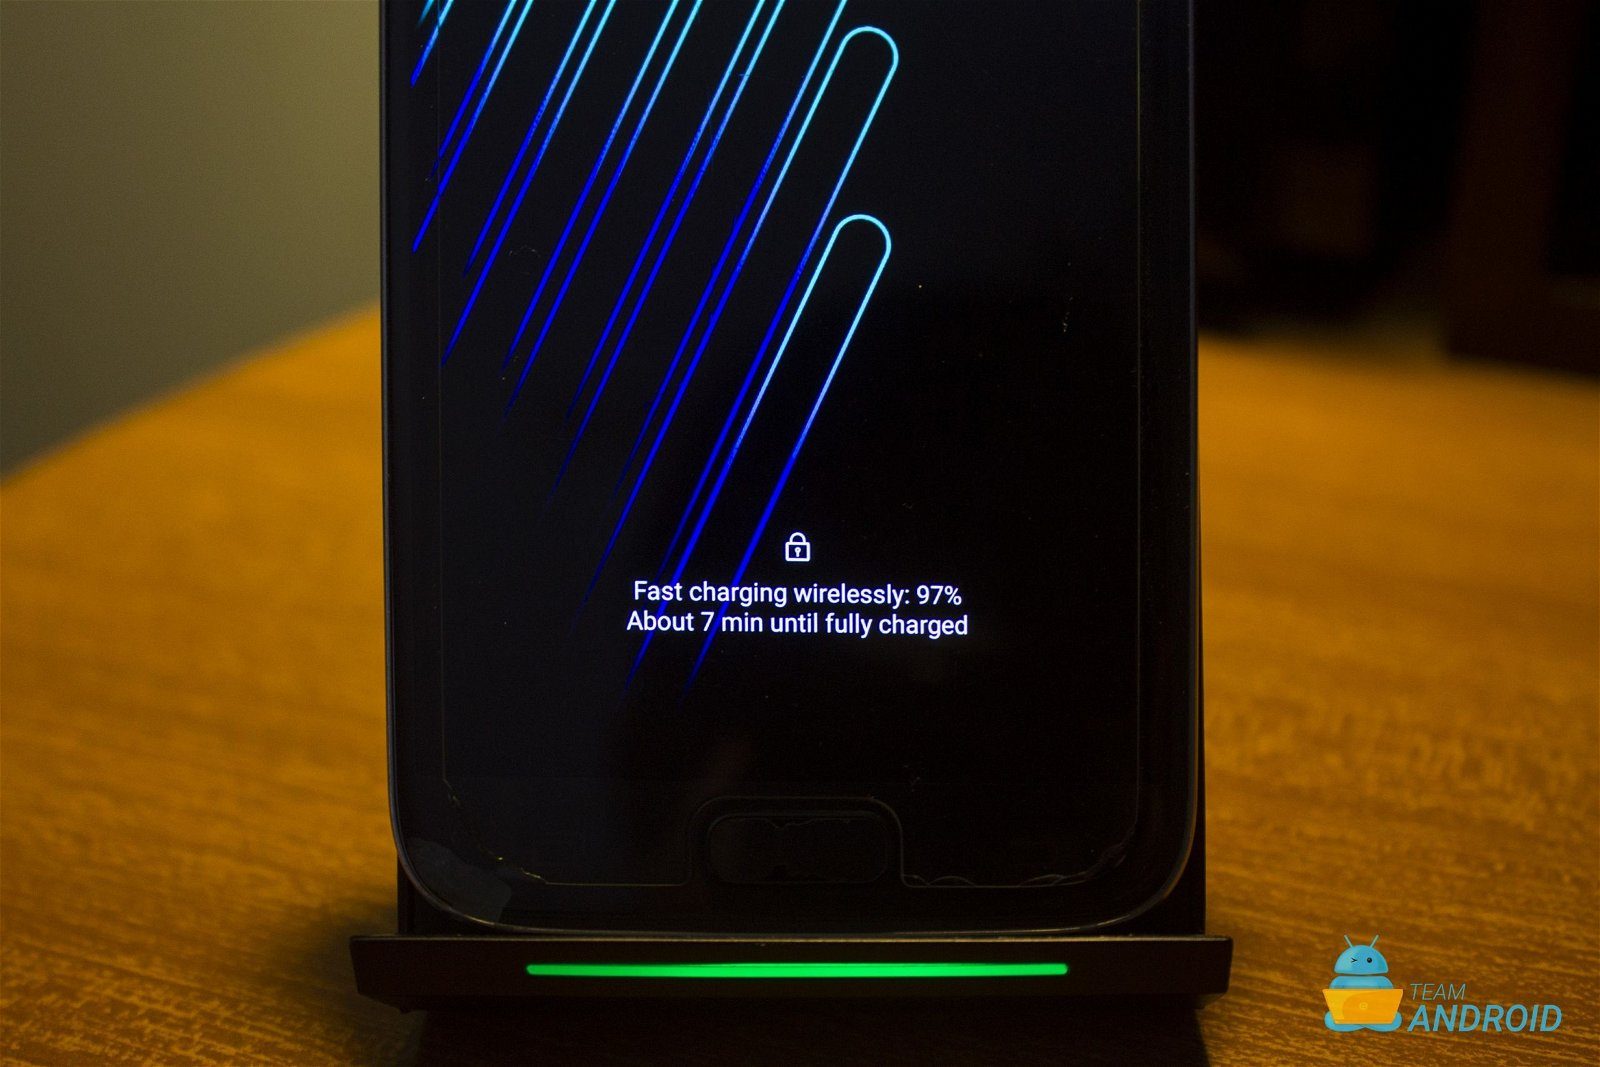 Fix Wireless Charging Paused Error